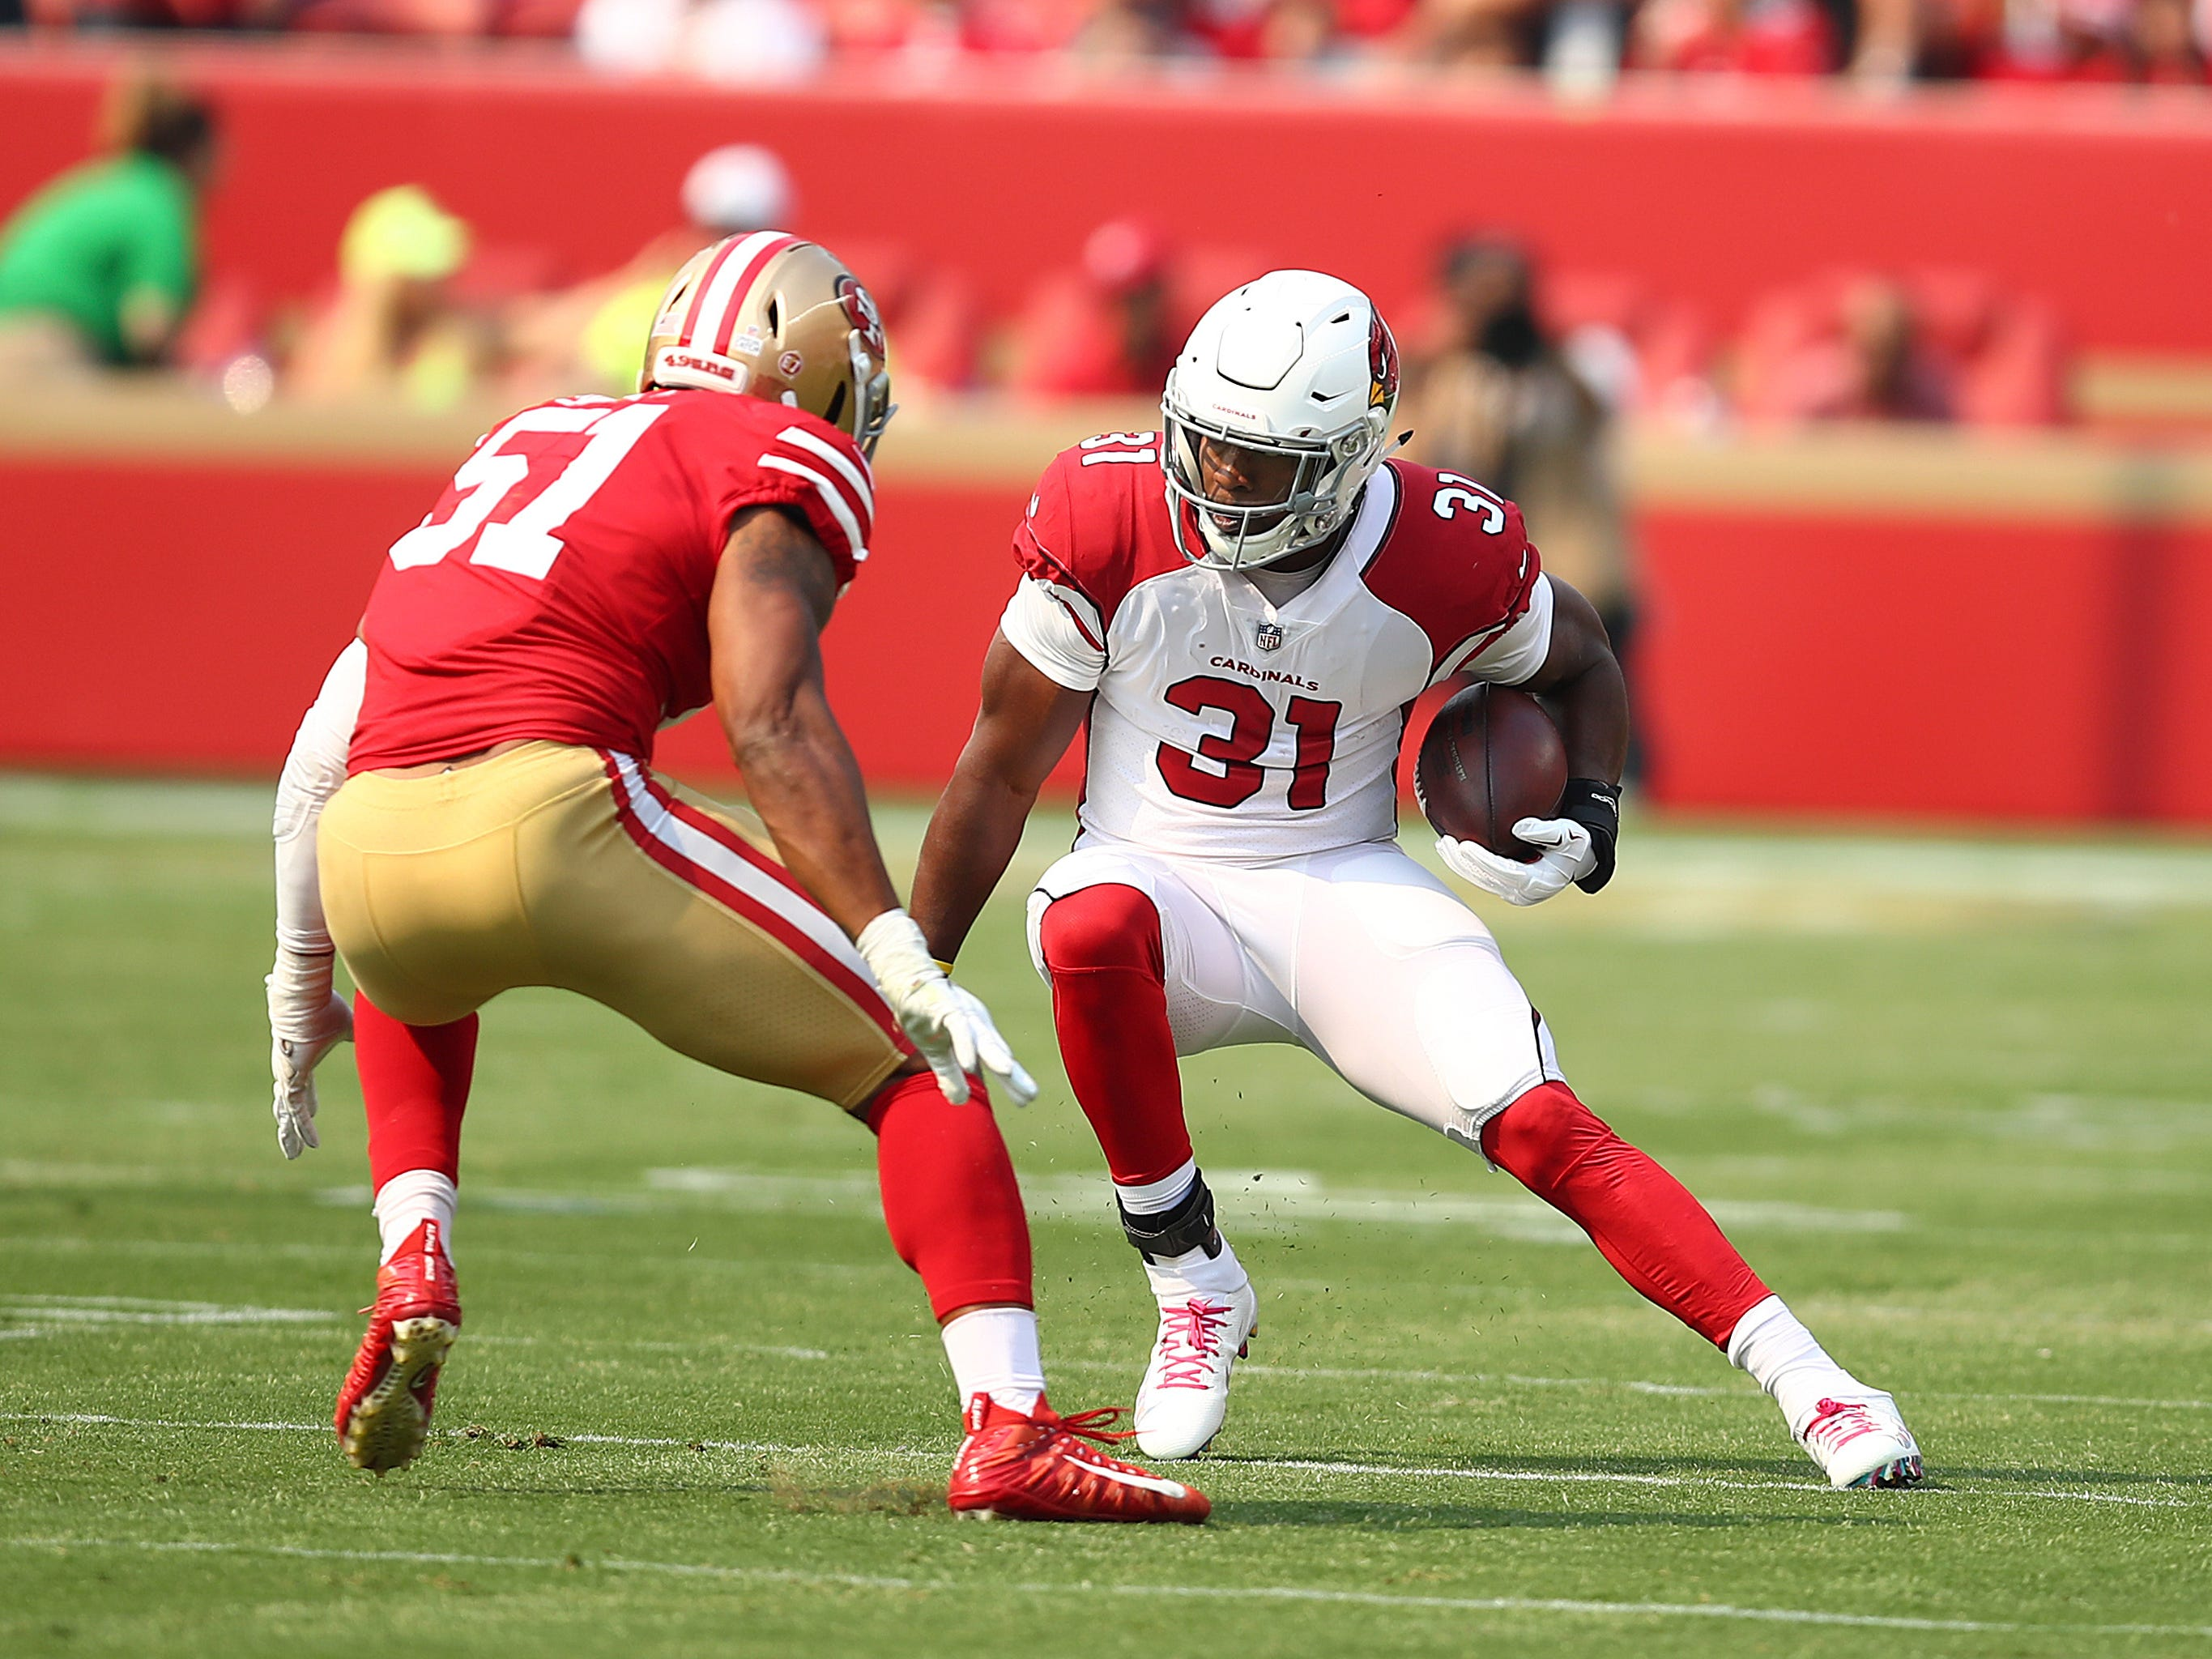 Arizona Cardinals running back David Johnson (31) runs against San Francisco 49ers linebacker Malcolm Smith (51) during the first half of an NFL football game in Santa Clara, Calif., Sunday, Oct. 7, 2018.